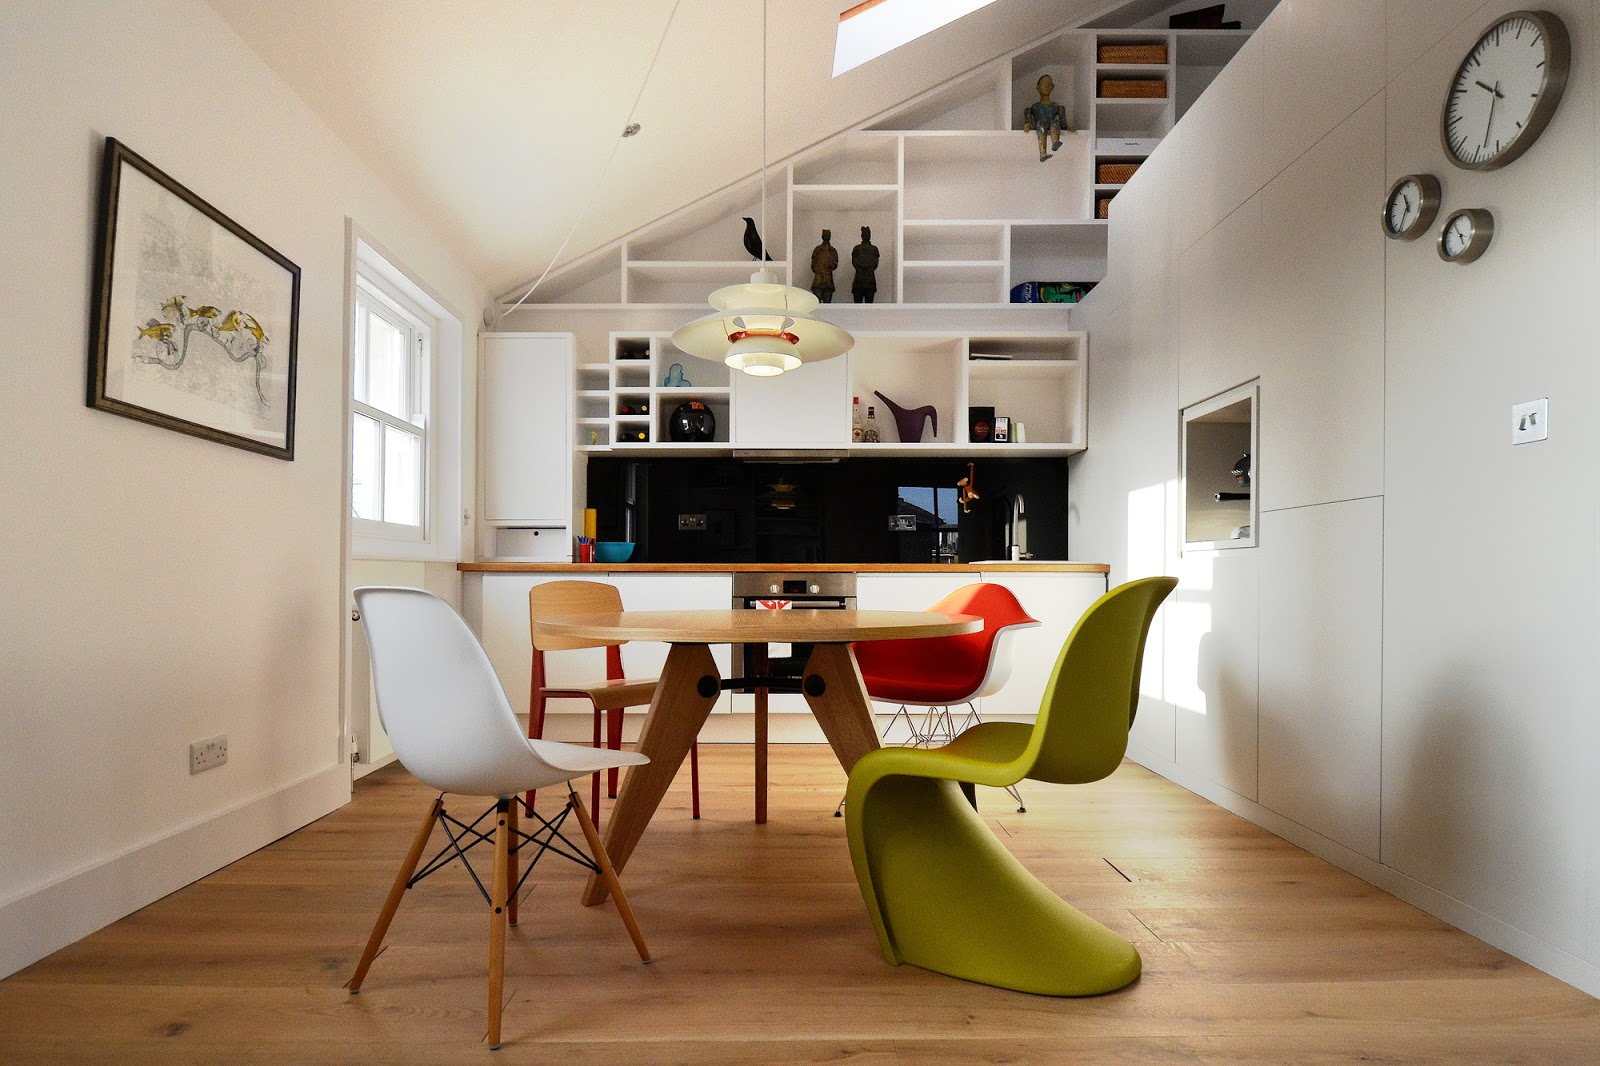 galleria_lakberendezes_space-saving-apartment009.jpg